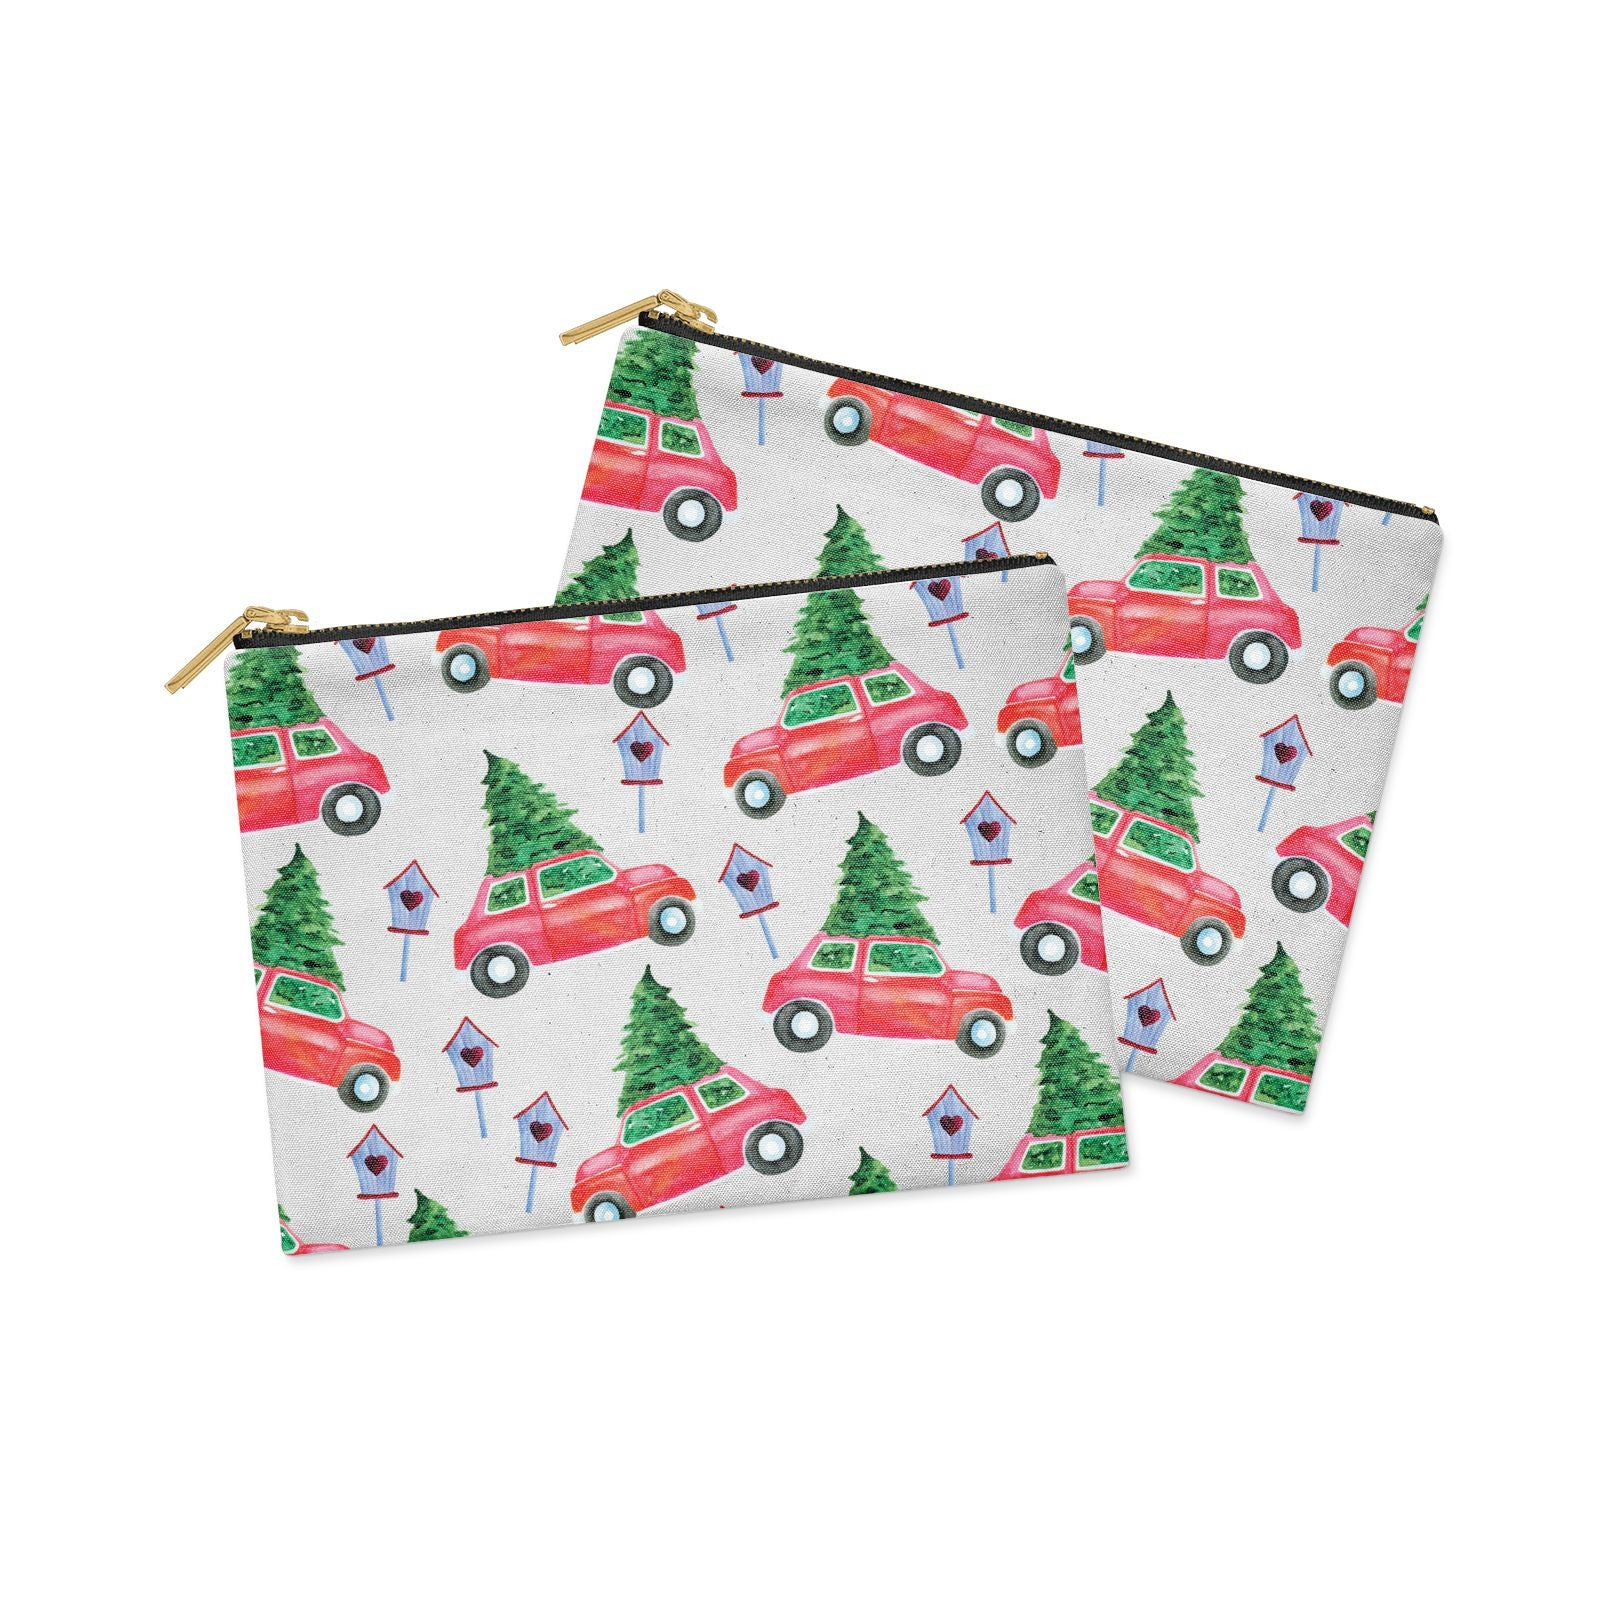 Driving home for Christmas Clutch Bag Zipper Pouch Alternative View